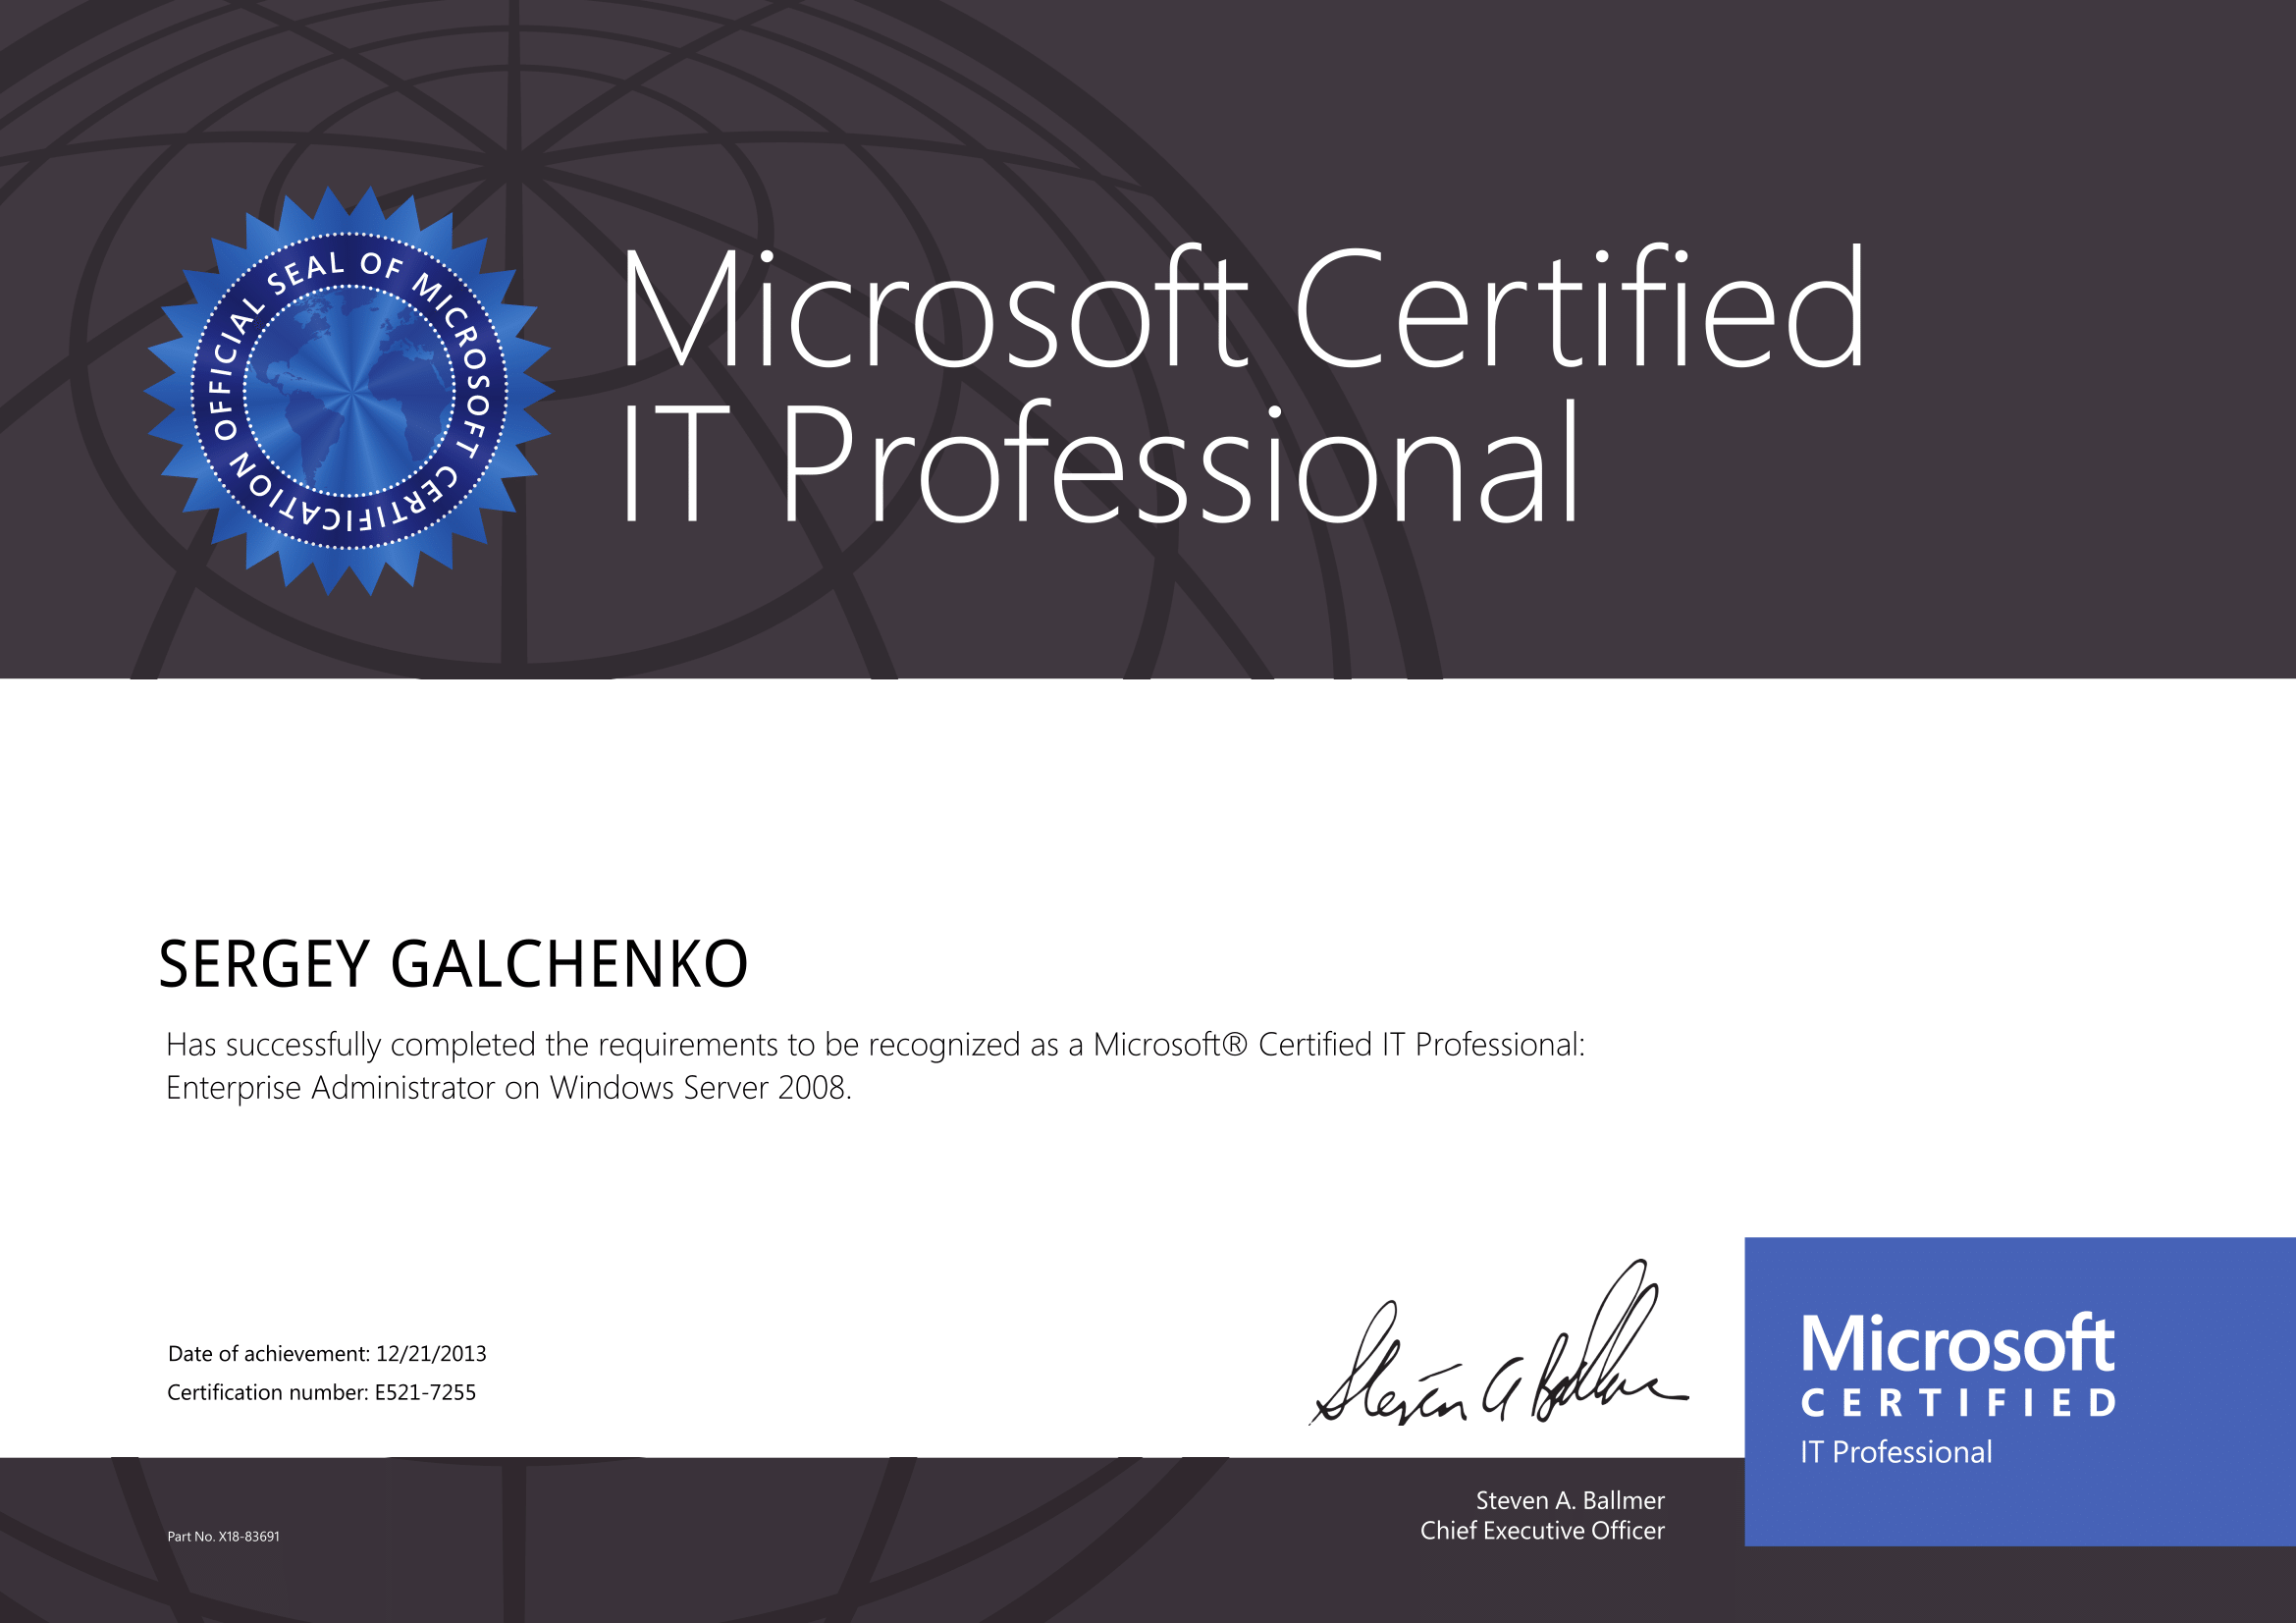 foundations practice exam microsoft technology associate Vmware is the global leader in virtualization software, providing desktop and server virtualization products for virtual infrastructure solutions.